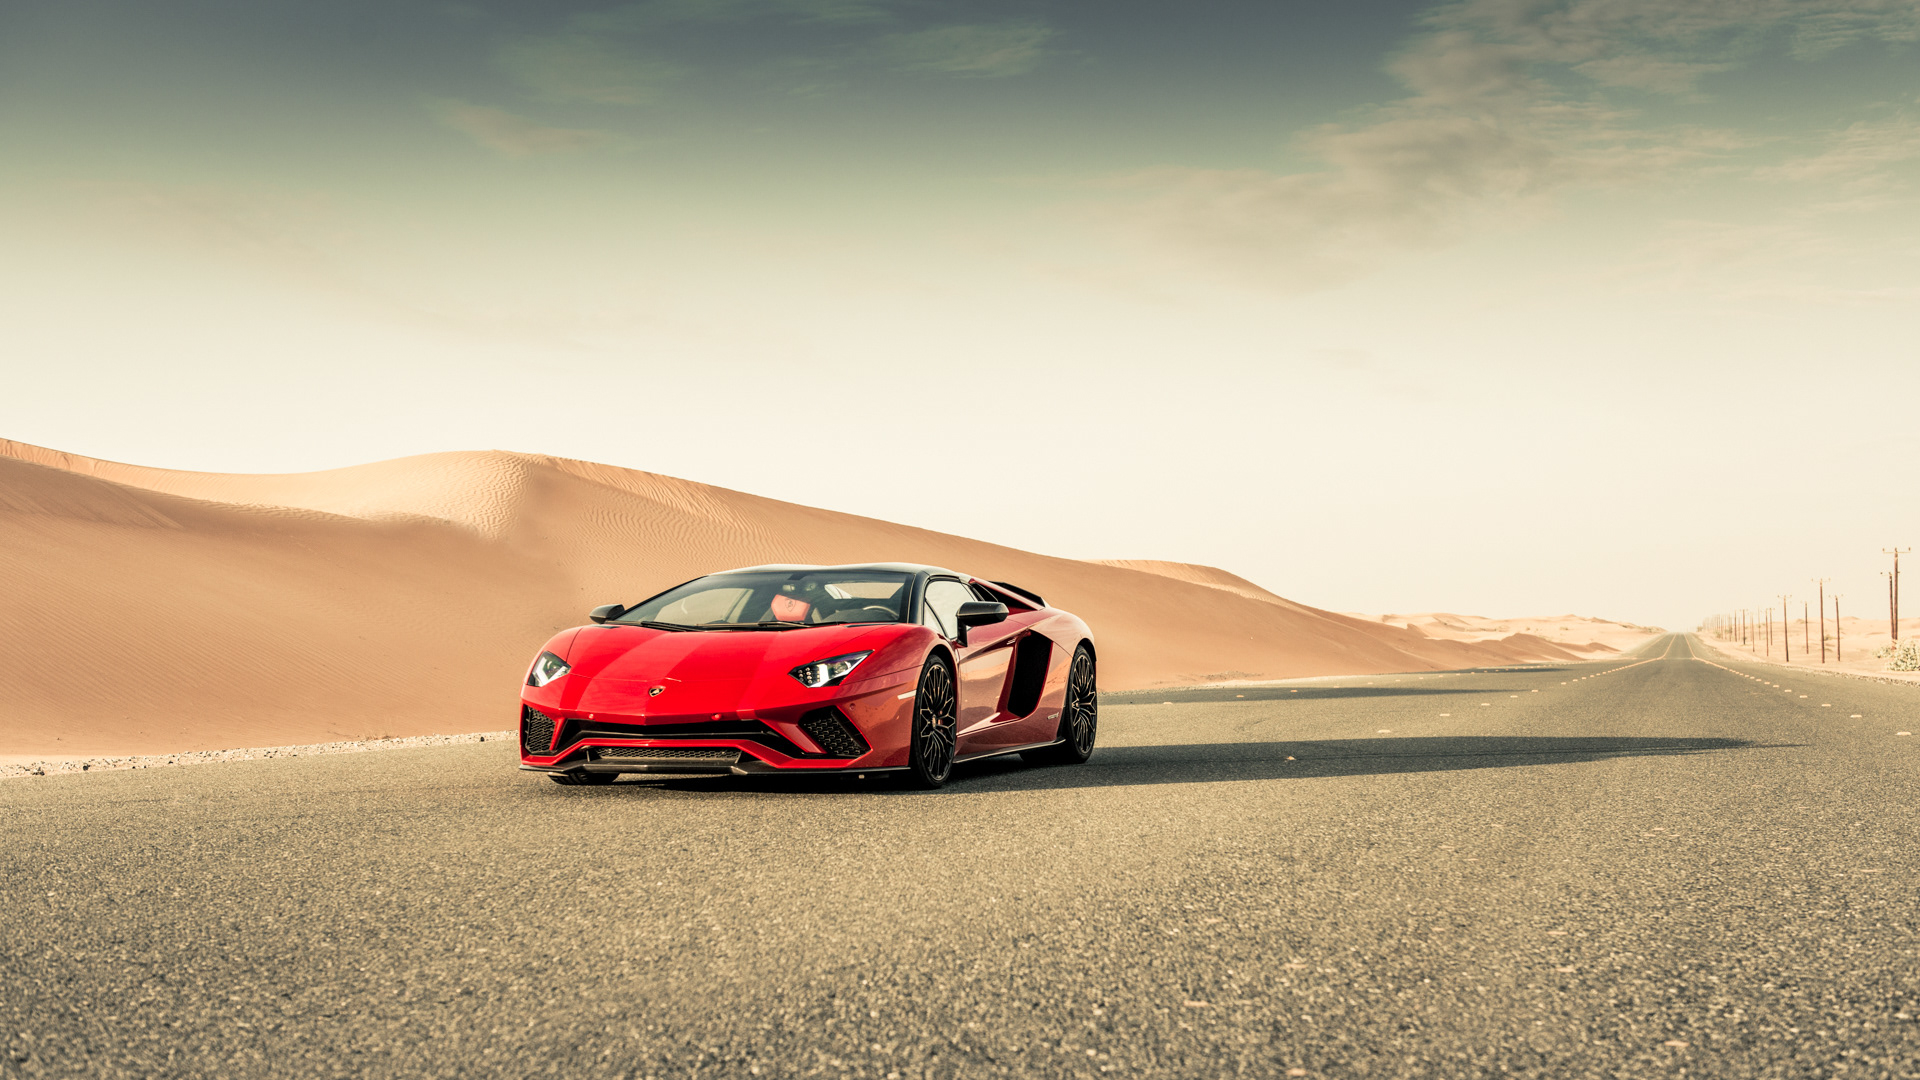 Lamborghini Aventador S Wallpaper Hd Cars 4k Wallpapers Images Photos And Background